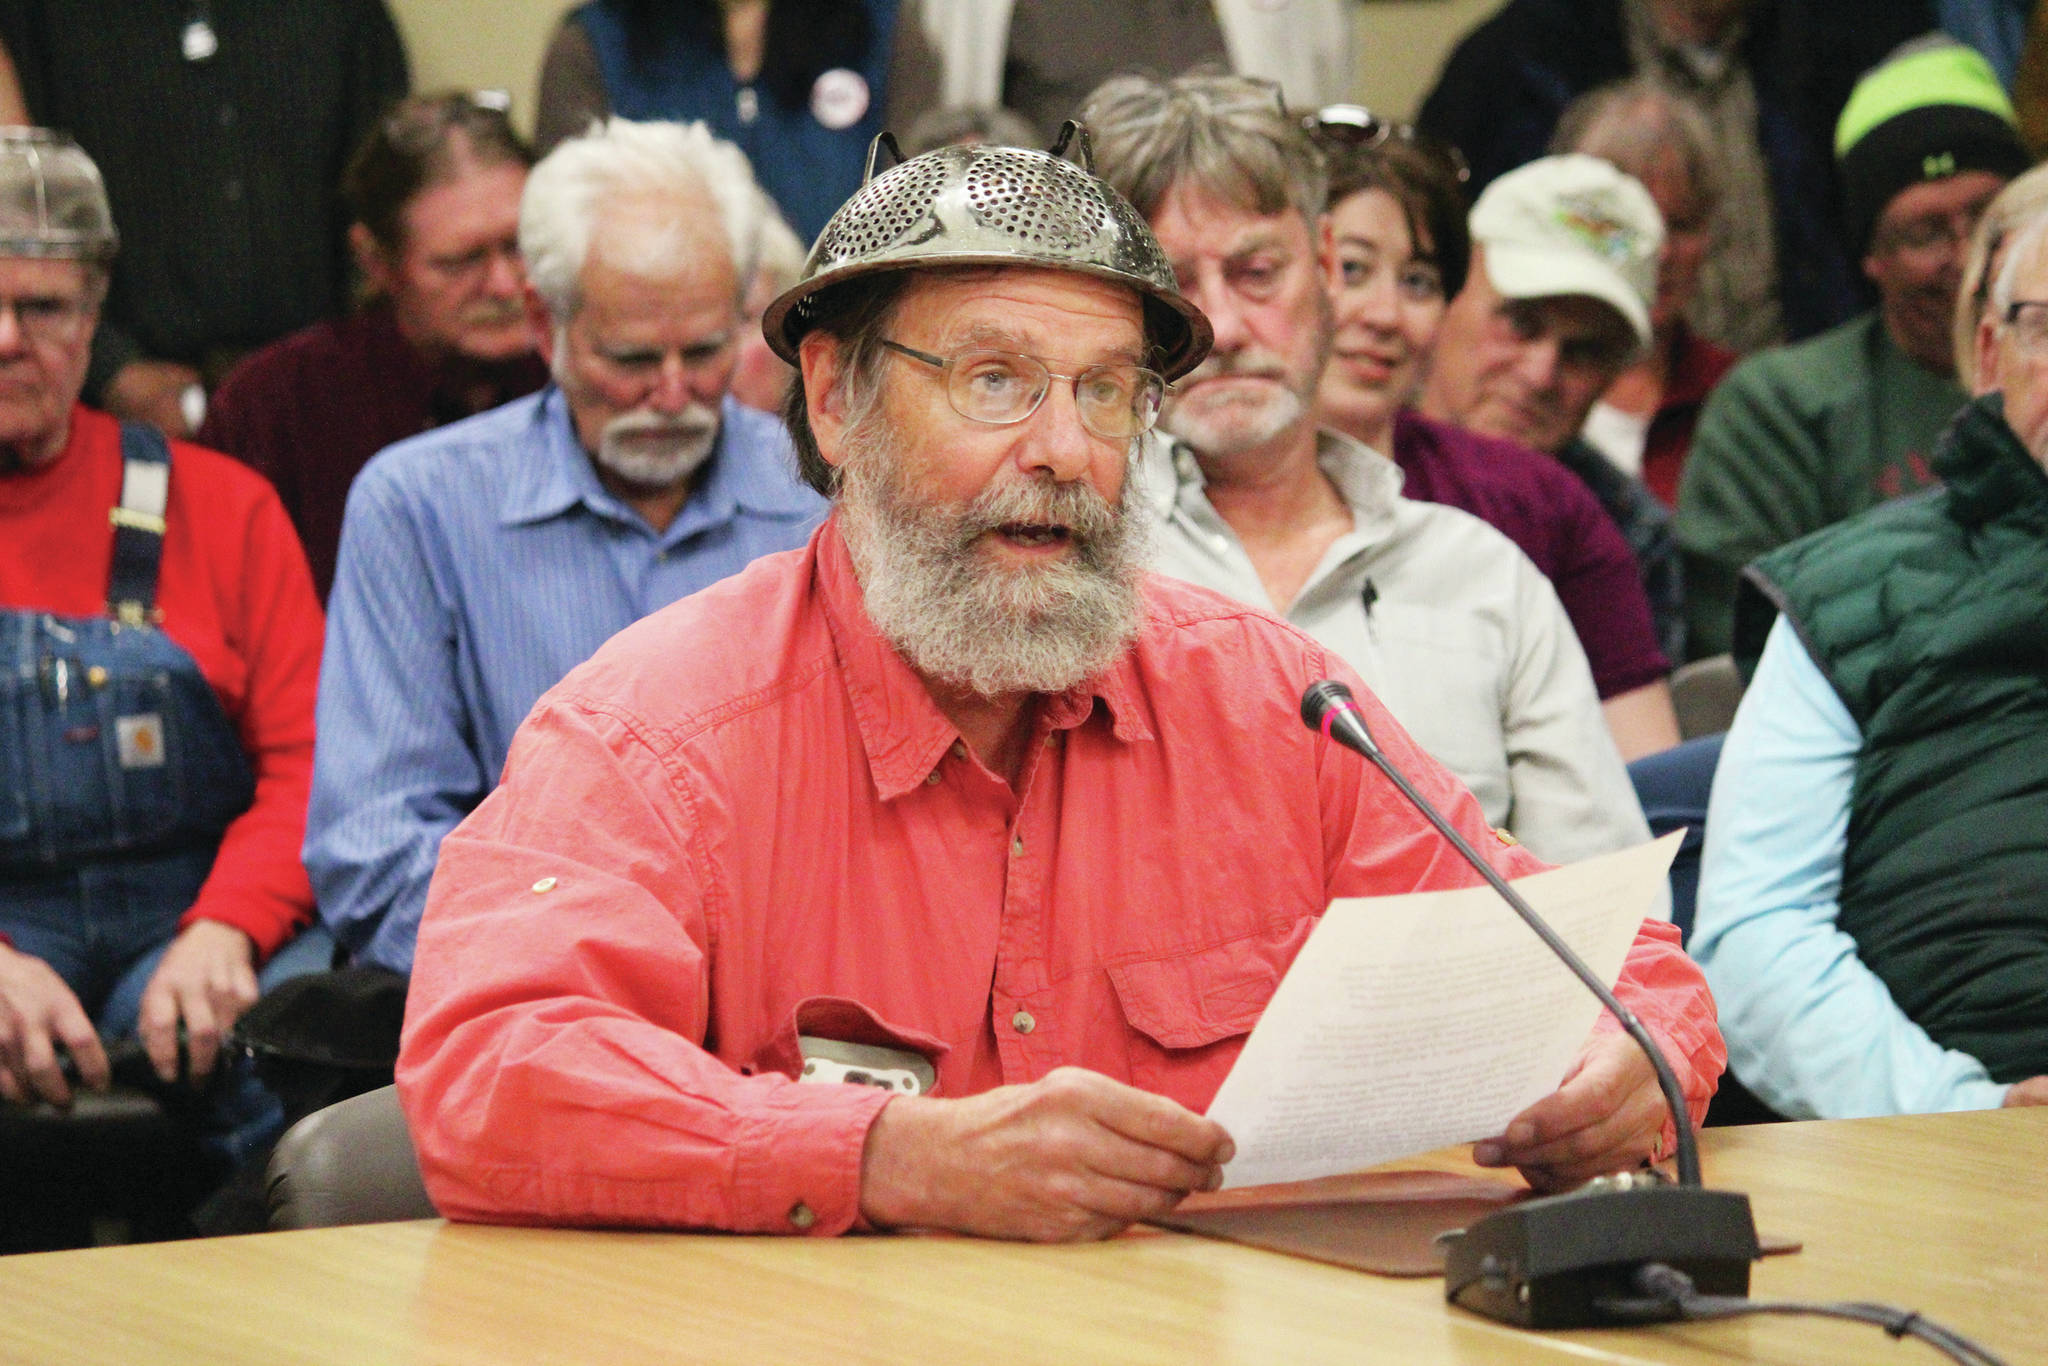 Megan Pacer/Homer News                                 Frtiz Creek area resident Barrett Fletcher gives the invocation before a Tuesday Kenai Peninsula Borough Assembly meeting as a representative of the Church of the Flying Spaghetti Monster at Homer City Hall.